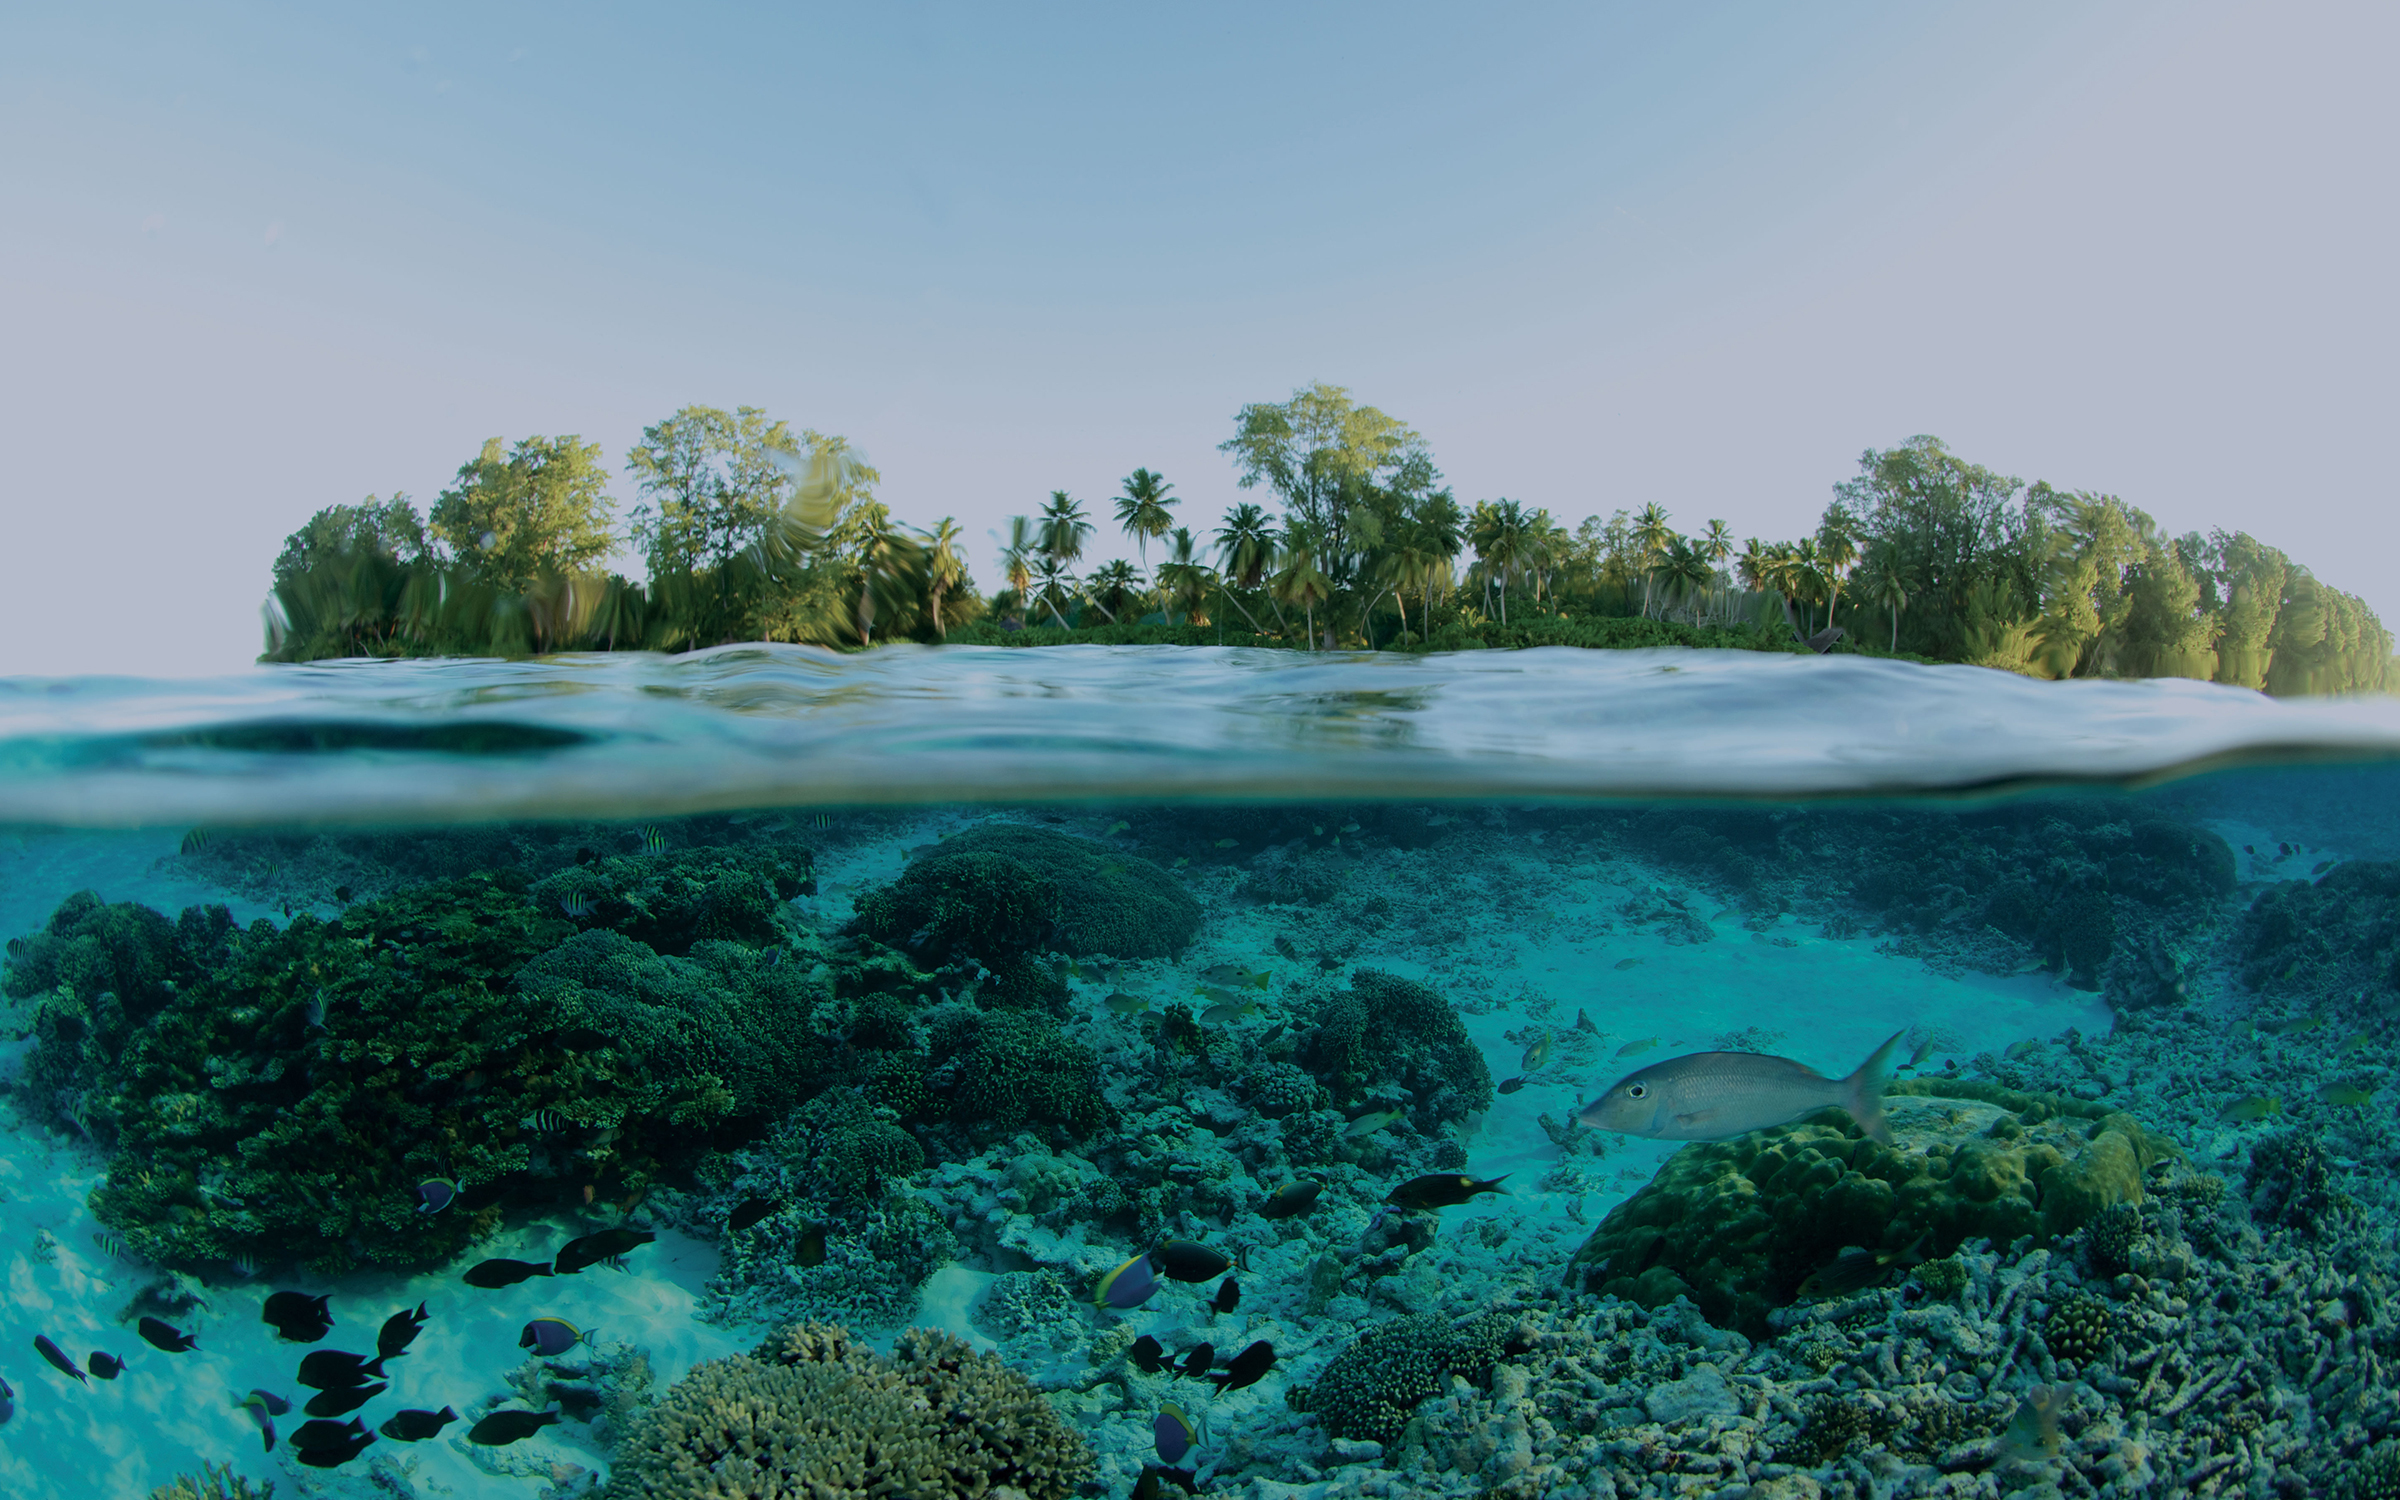 Photo splitting a tropical water line with fish below and an island above